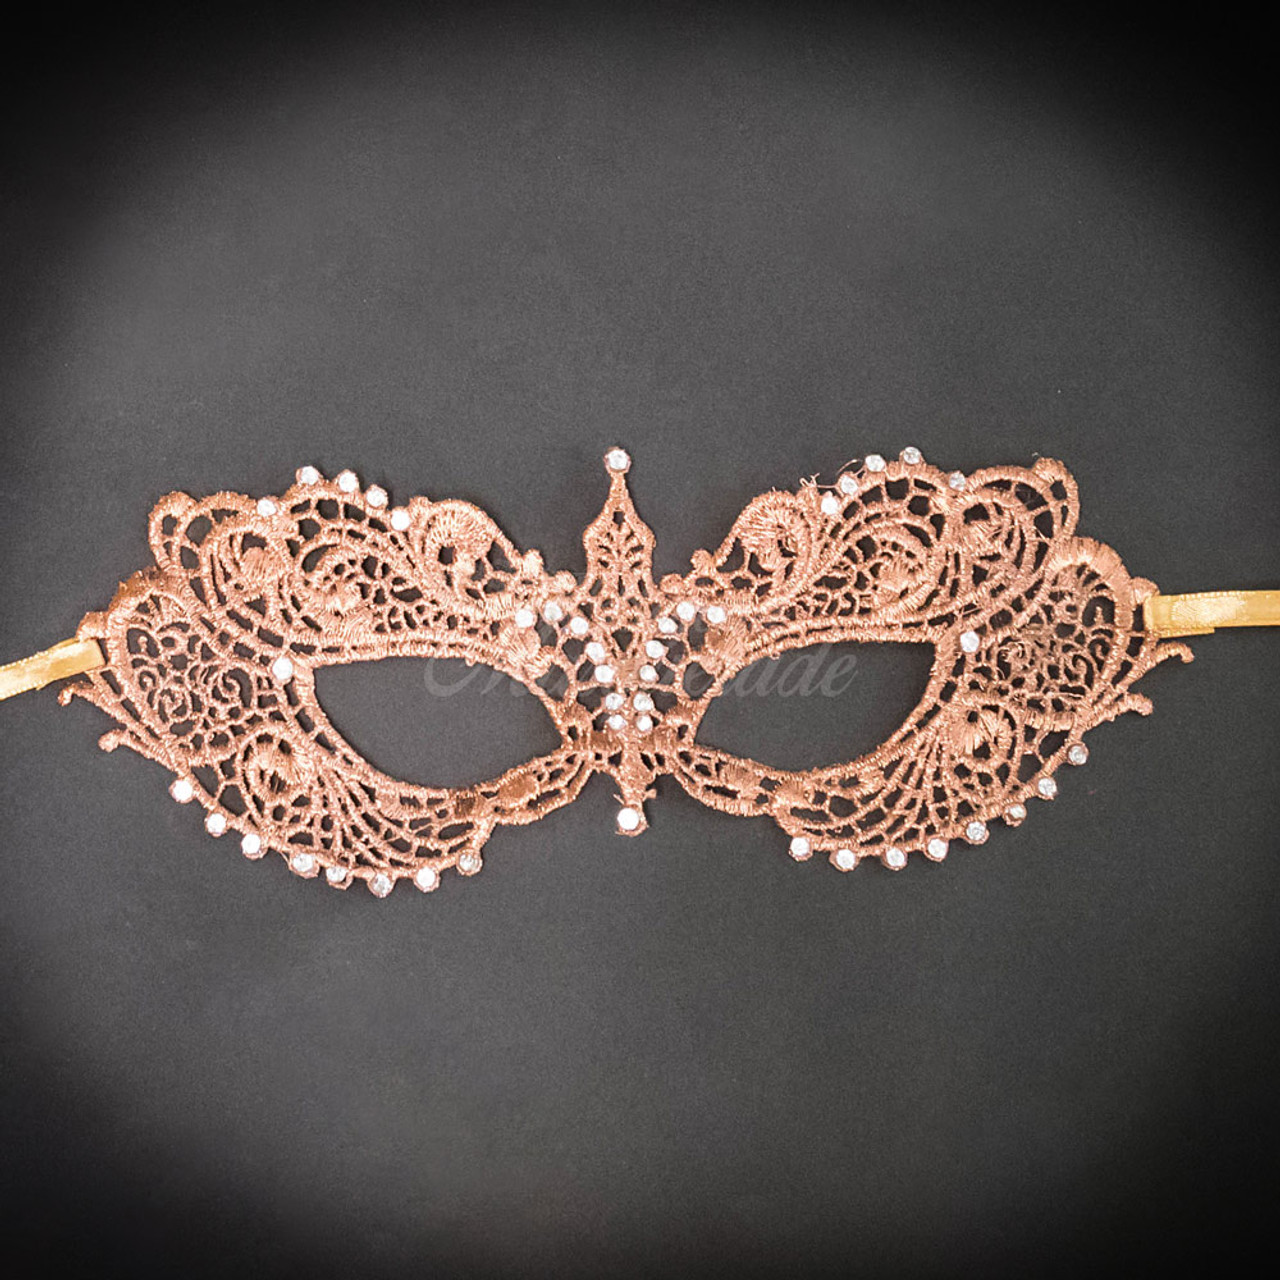 Costume Lace Mardi Gras Masquerade Mask Embellished with Gems for Women Gold